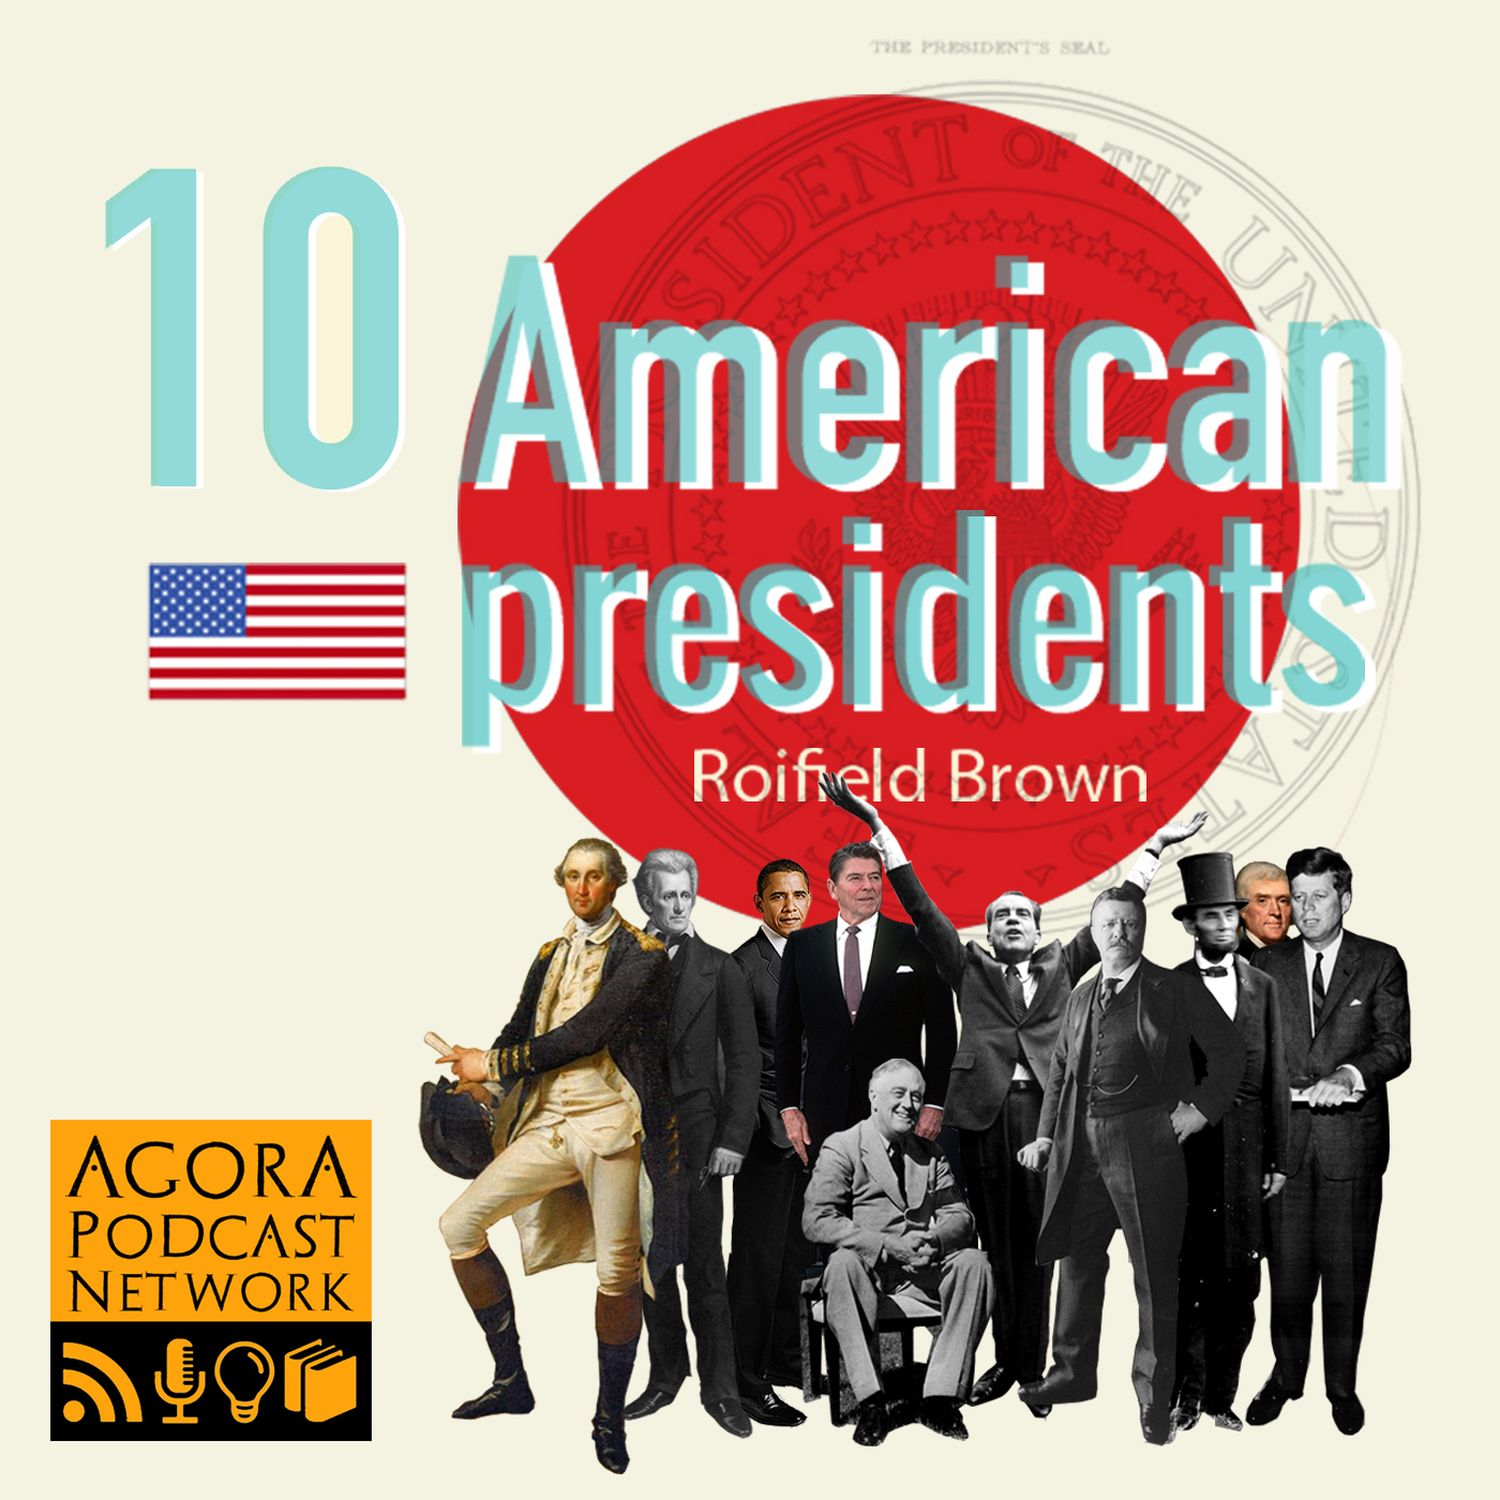 Ep:11 The Presidents Speech - Kevin Stroud - The History of English